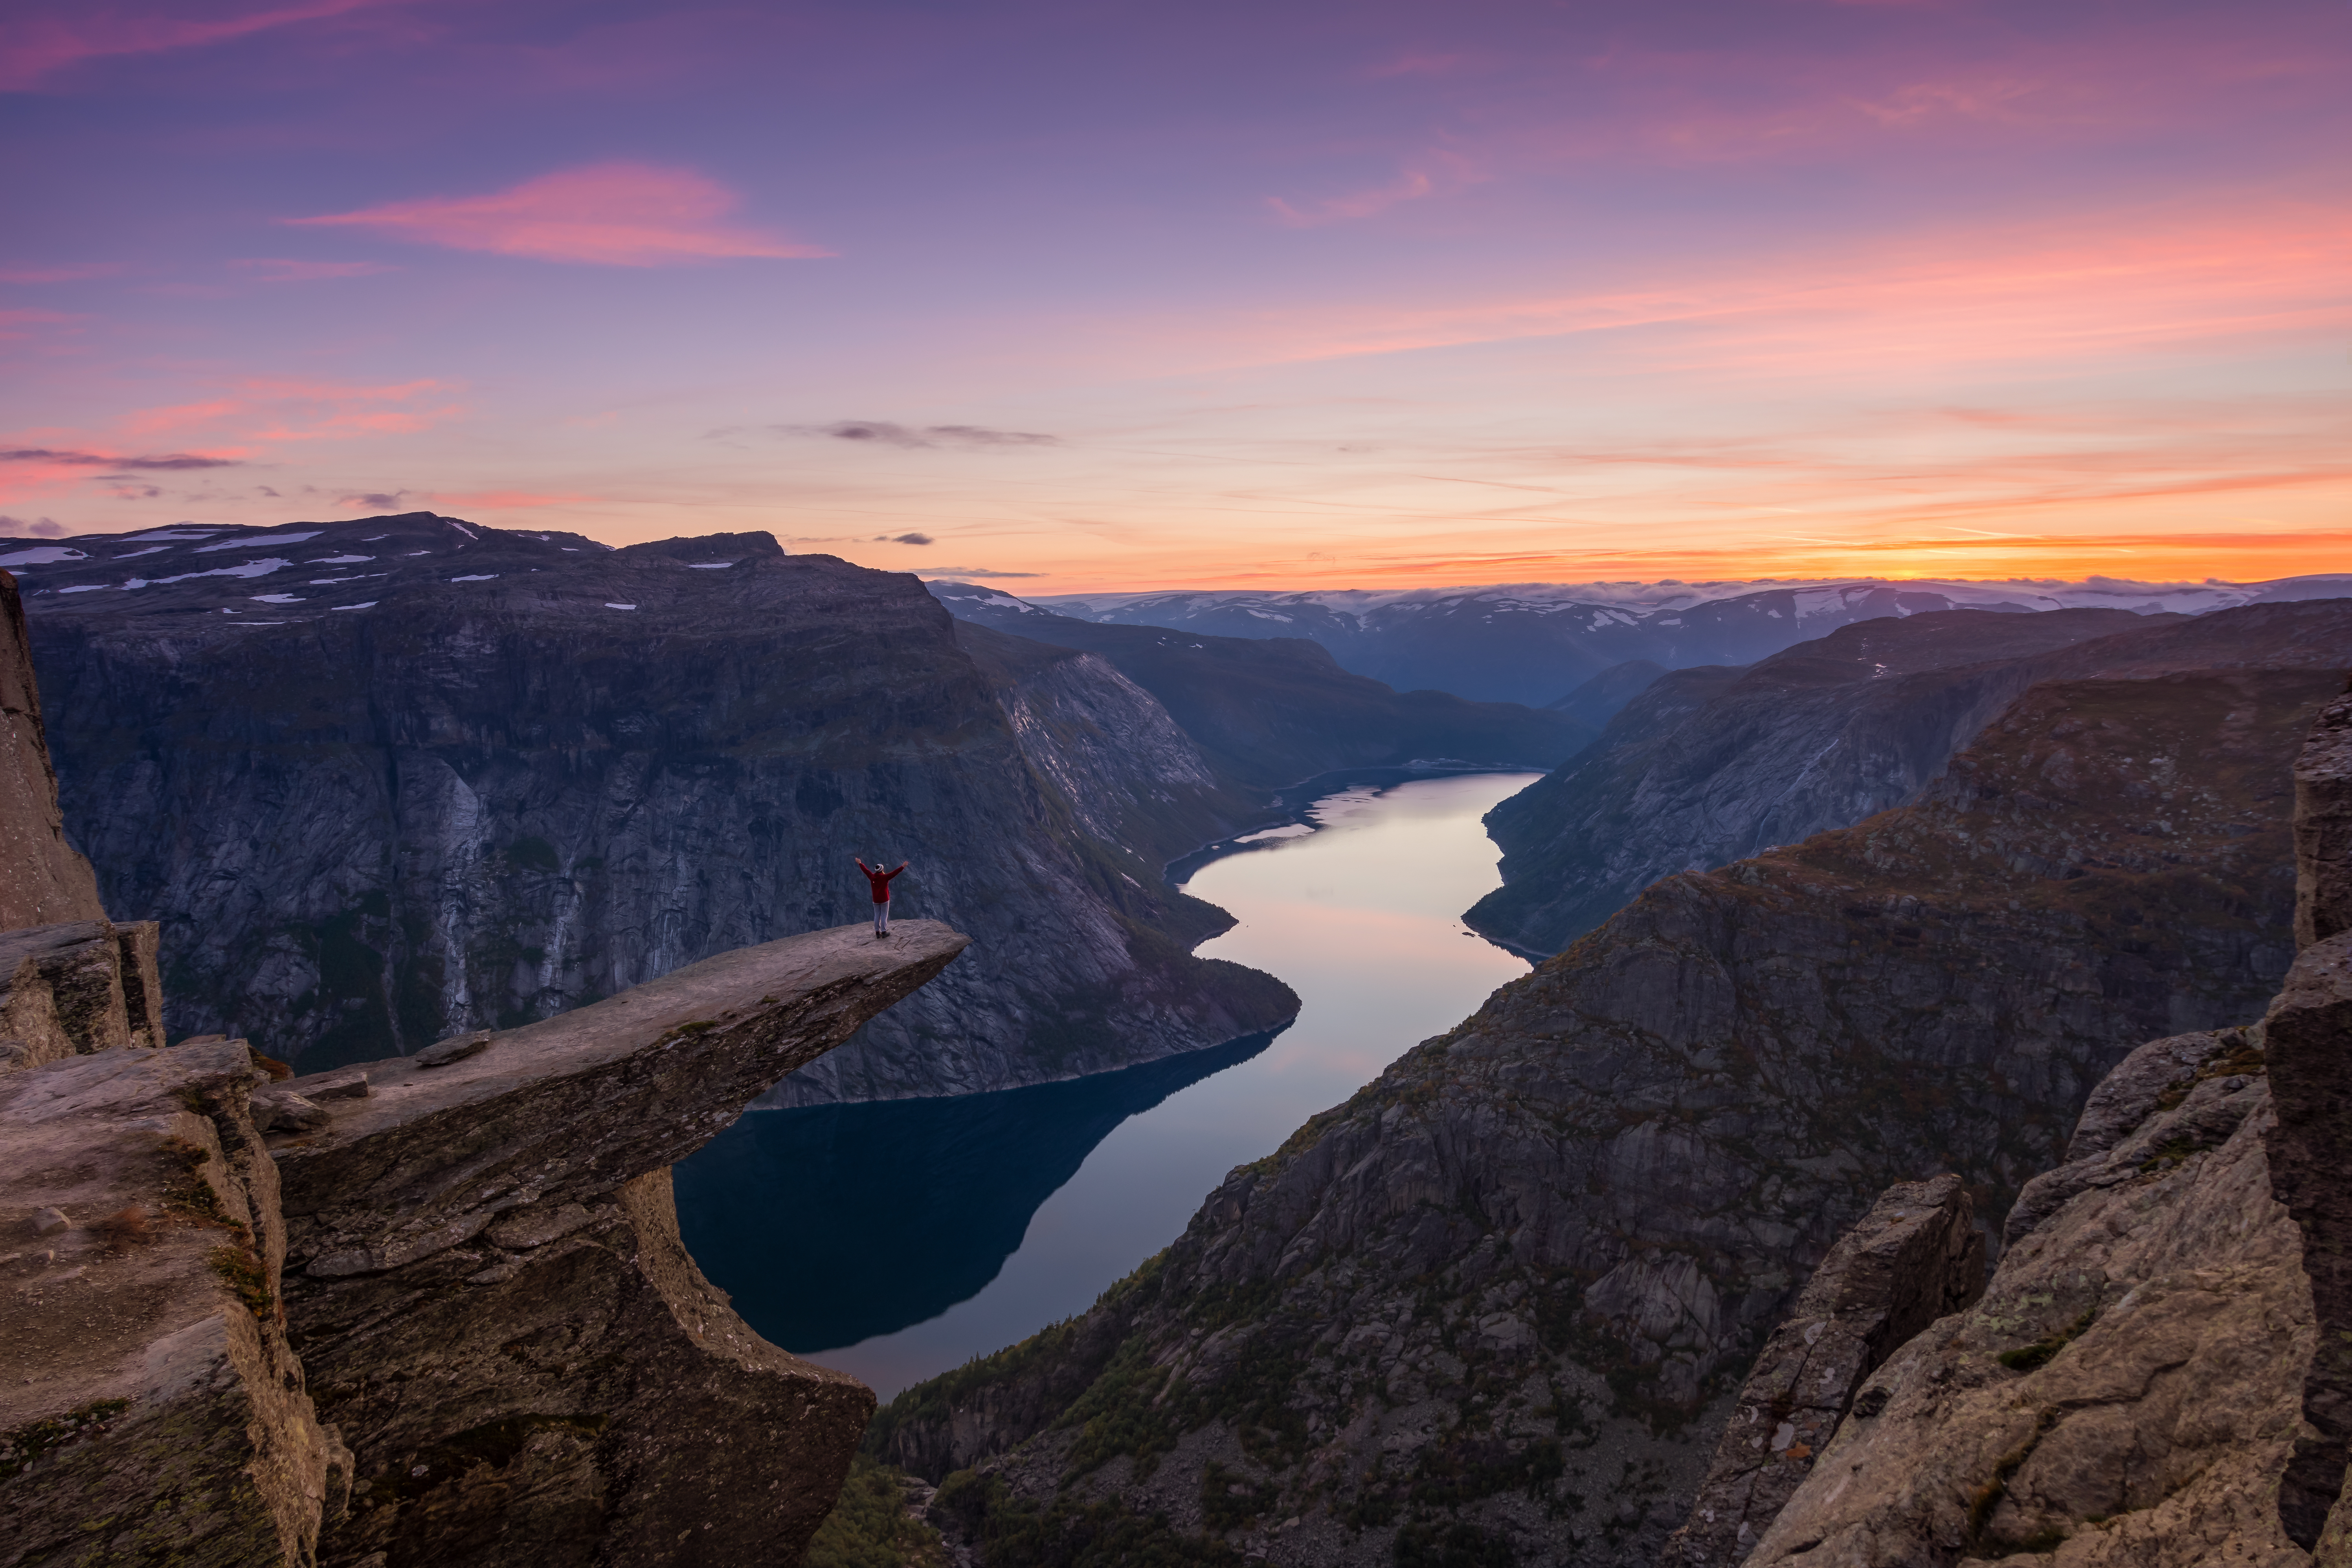 Trolltunga rock formation